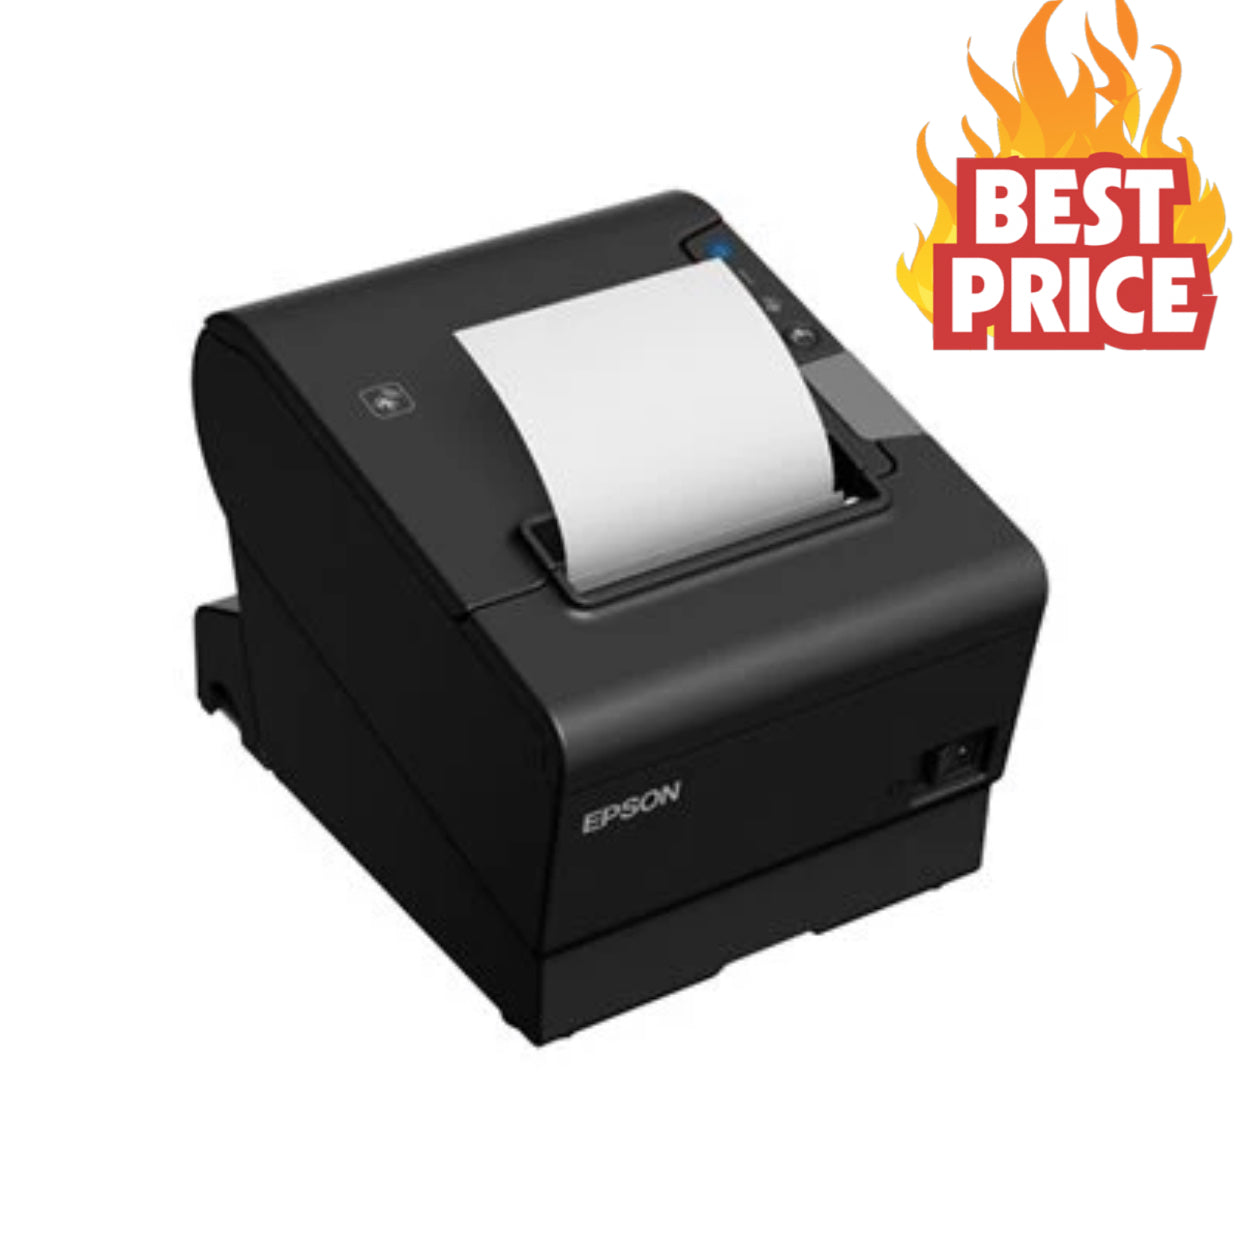 Epson TM-P60 Mobile Thermal Printer Wireless 802.11